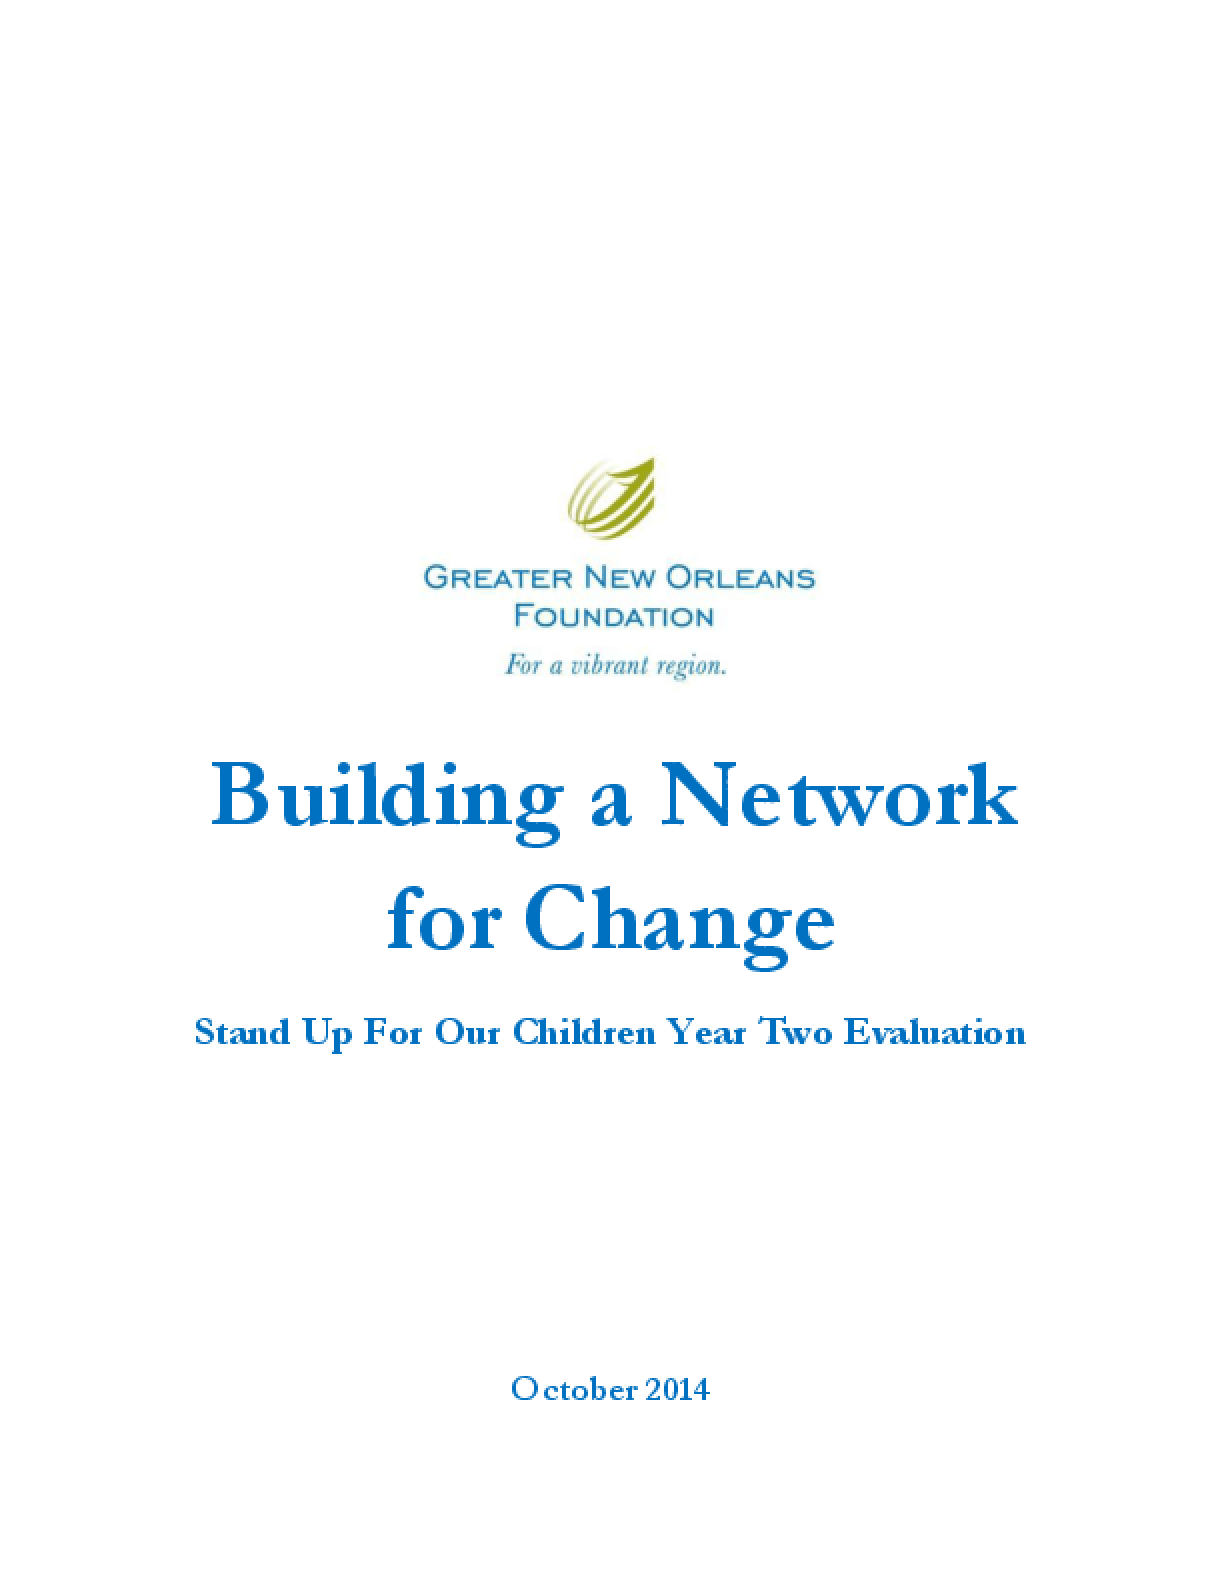 Building a Network for Change: Stand Up For Our Children Year Two Evaluation